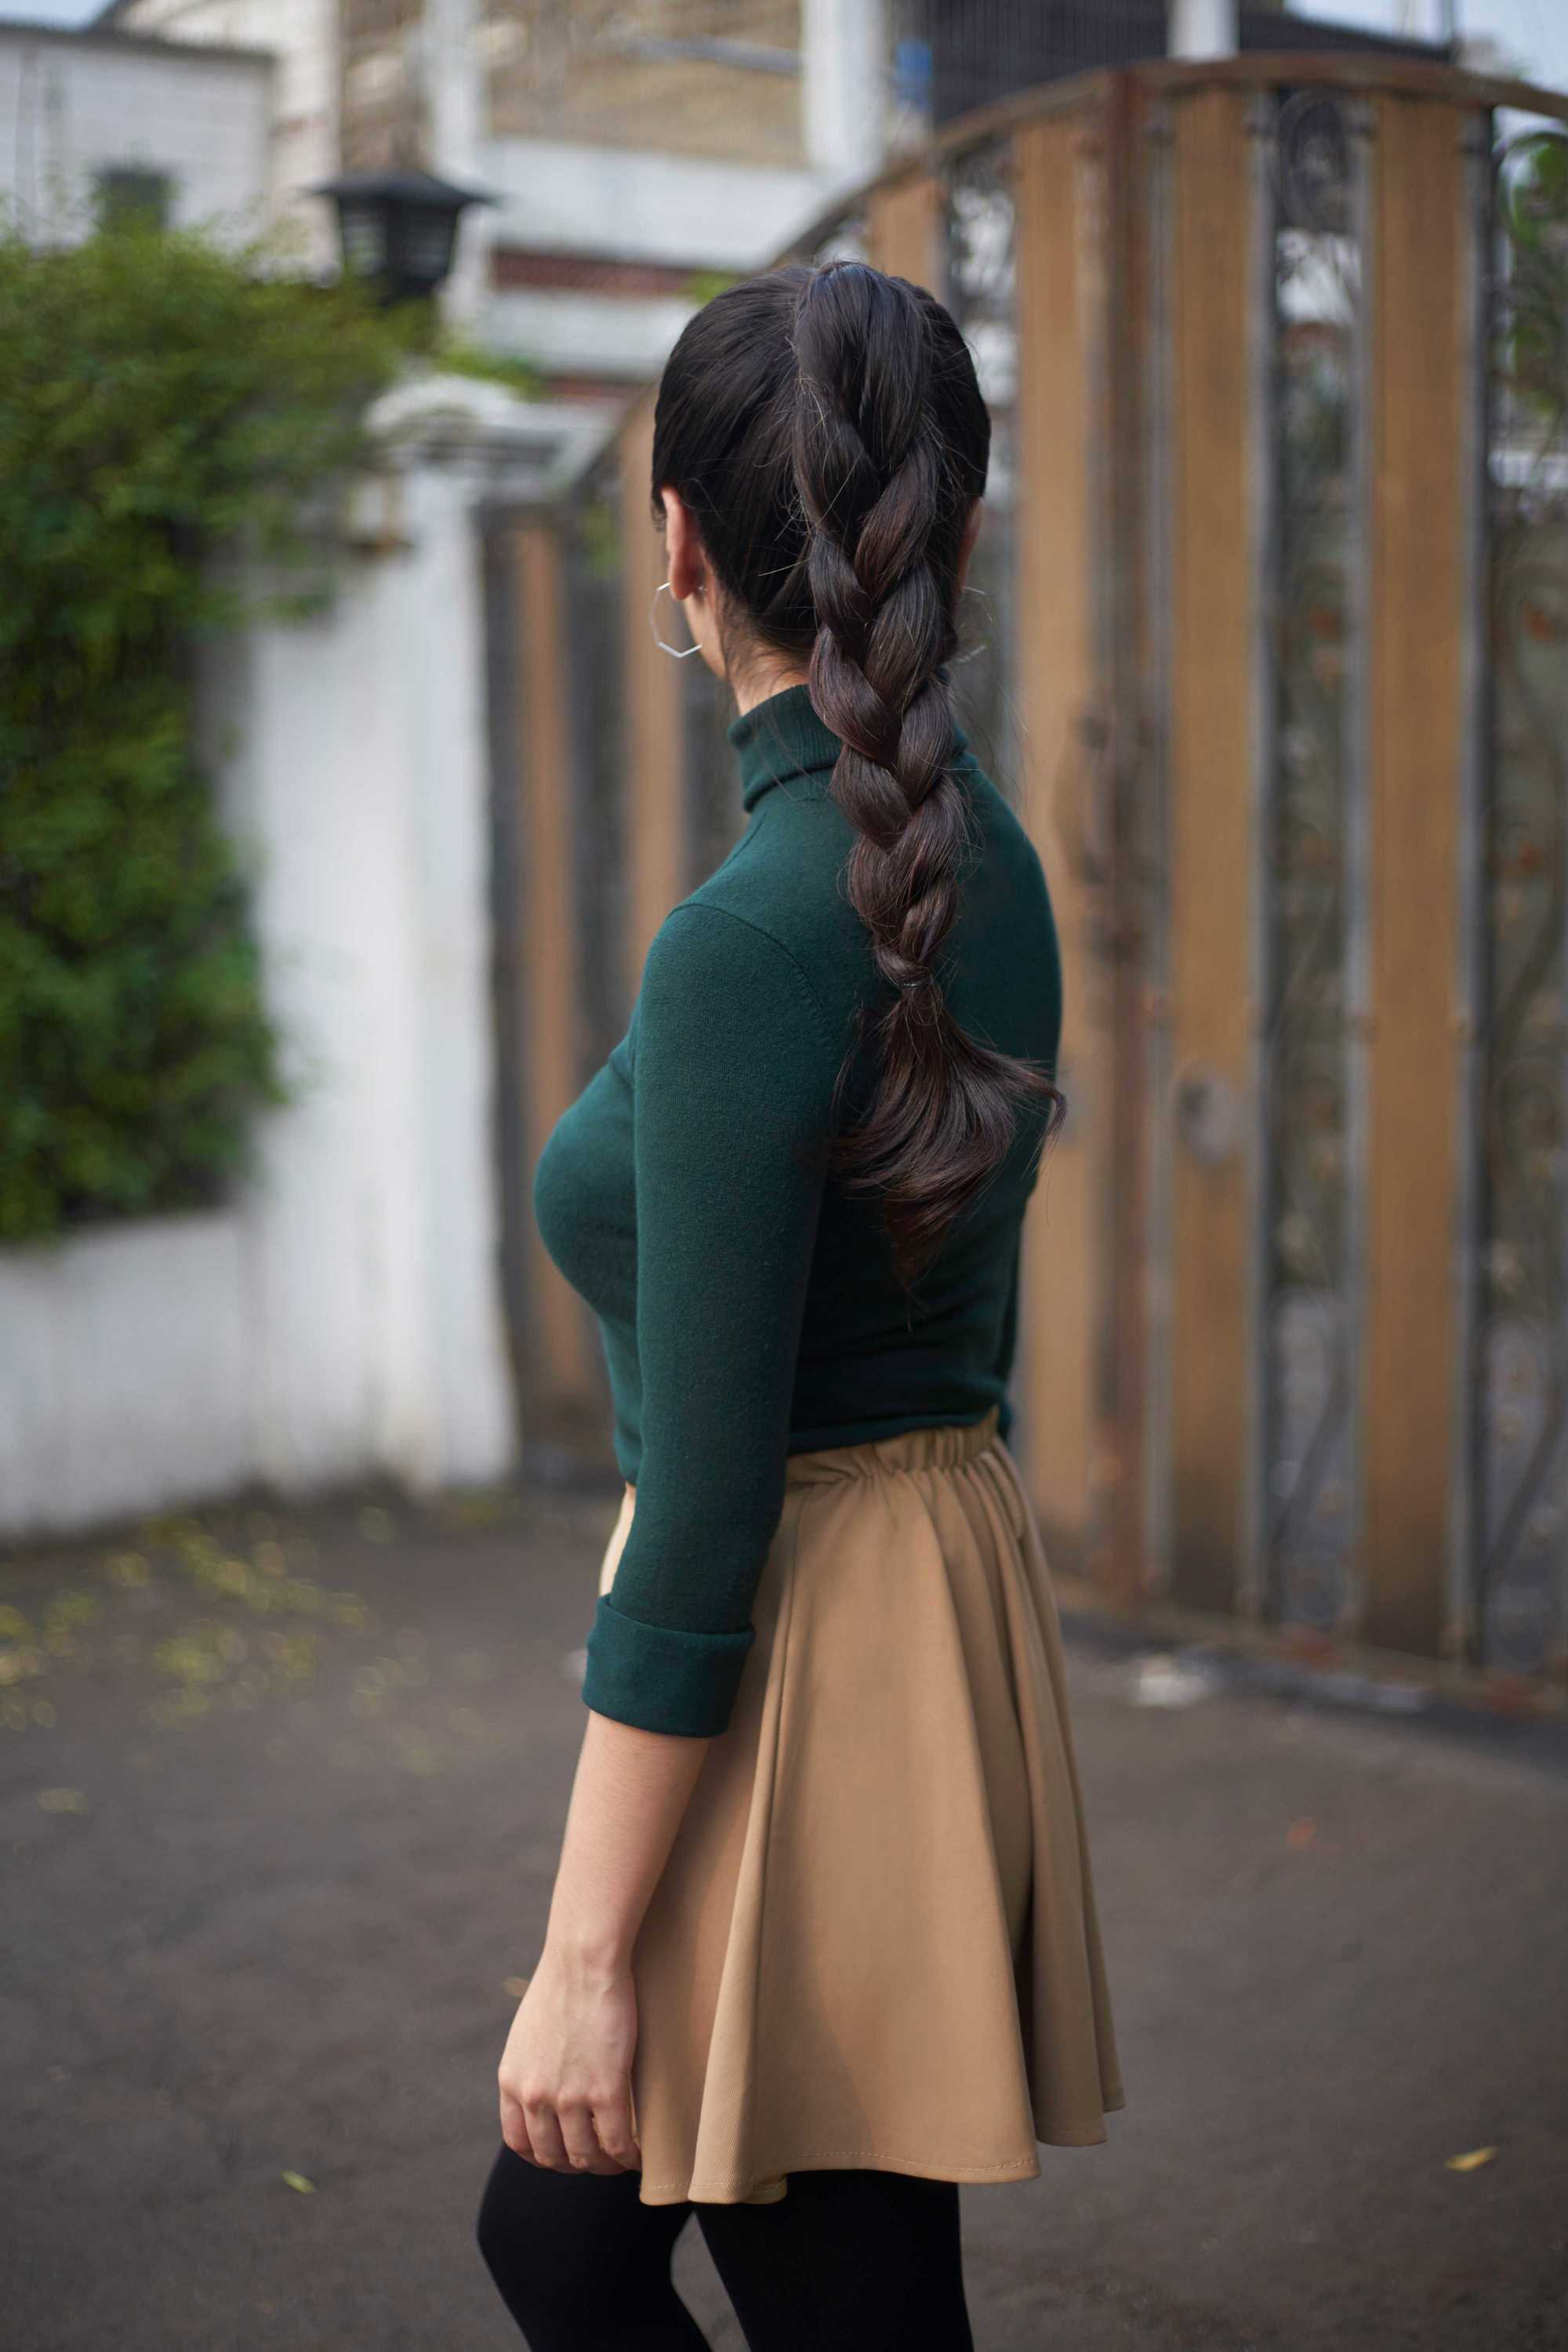 woman with ;pong dark brown braided ponytail